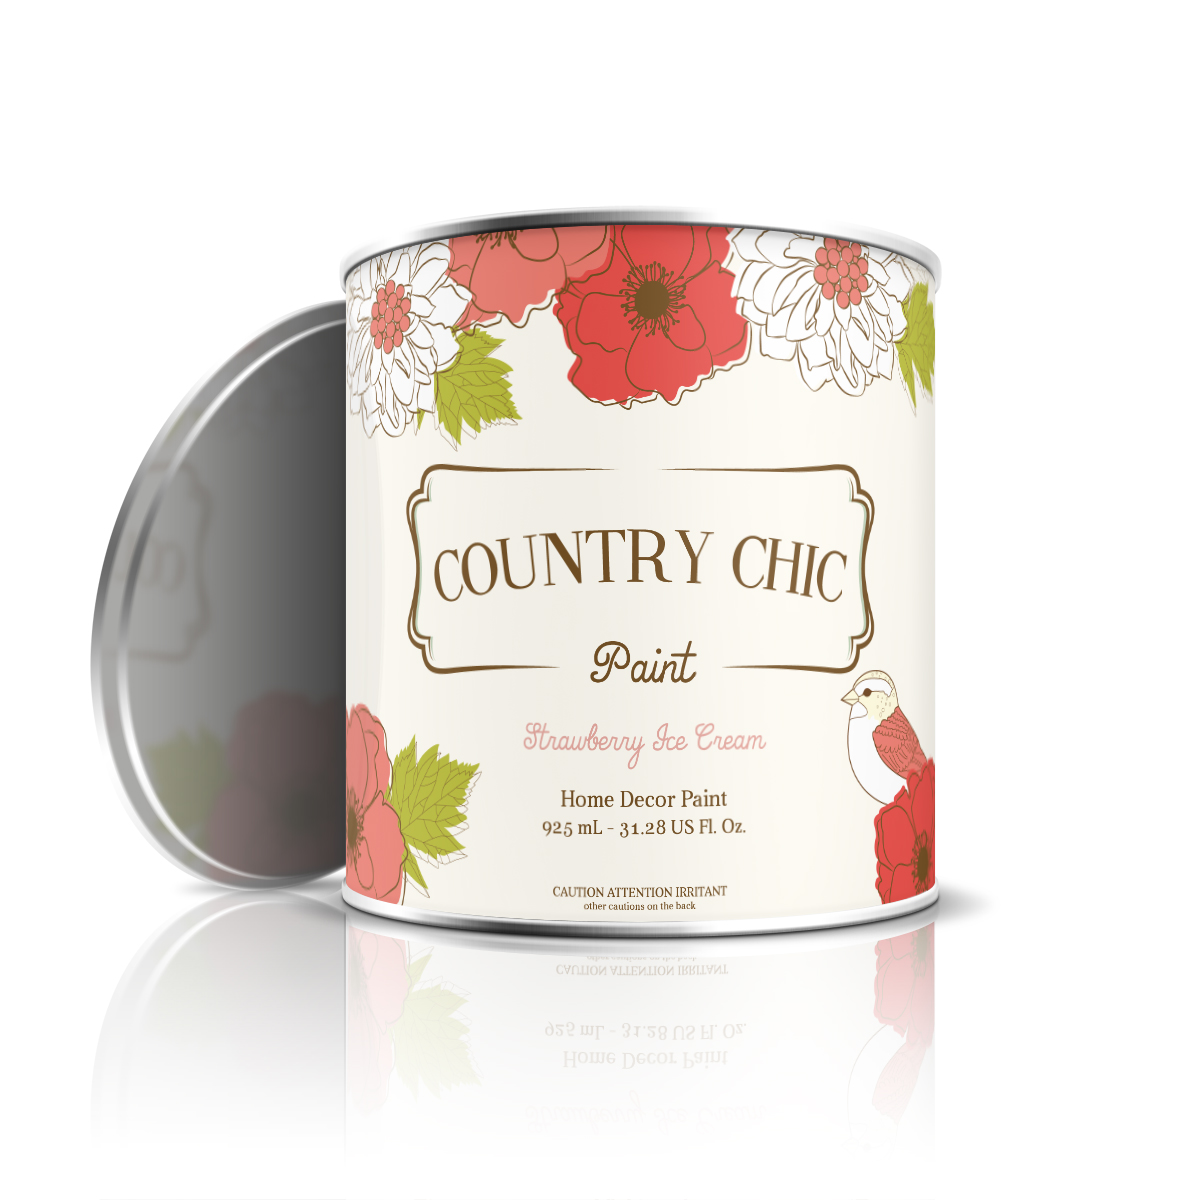 Country Chic Paint On Packaging Of The World